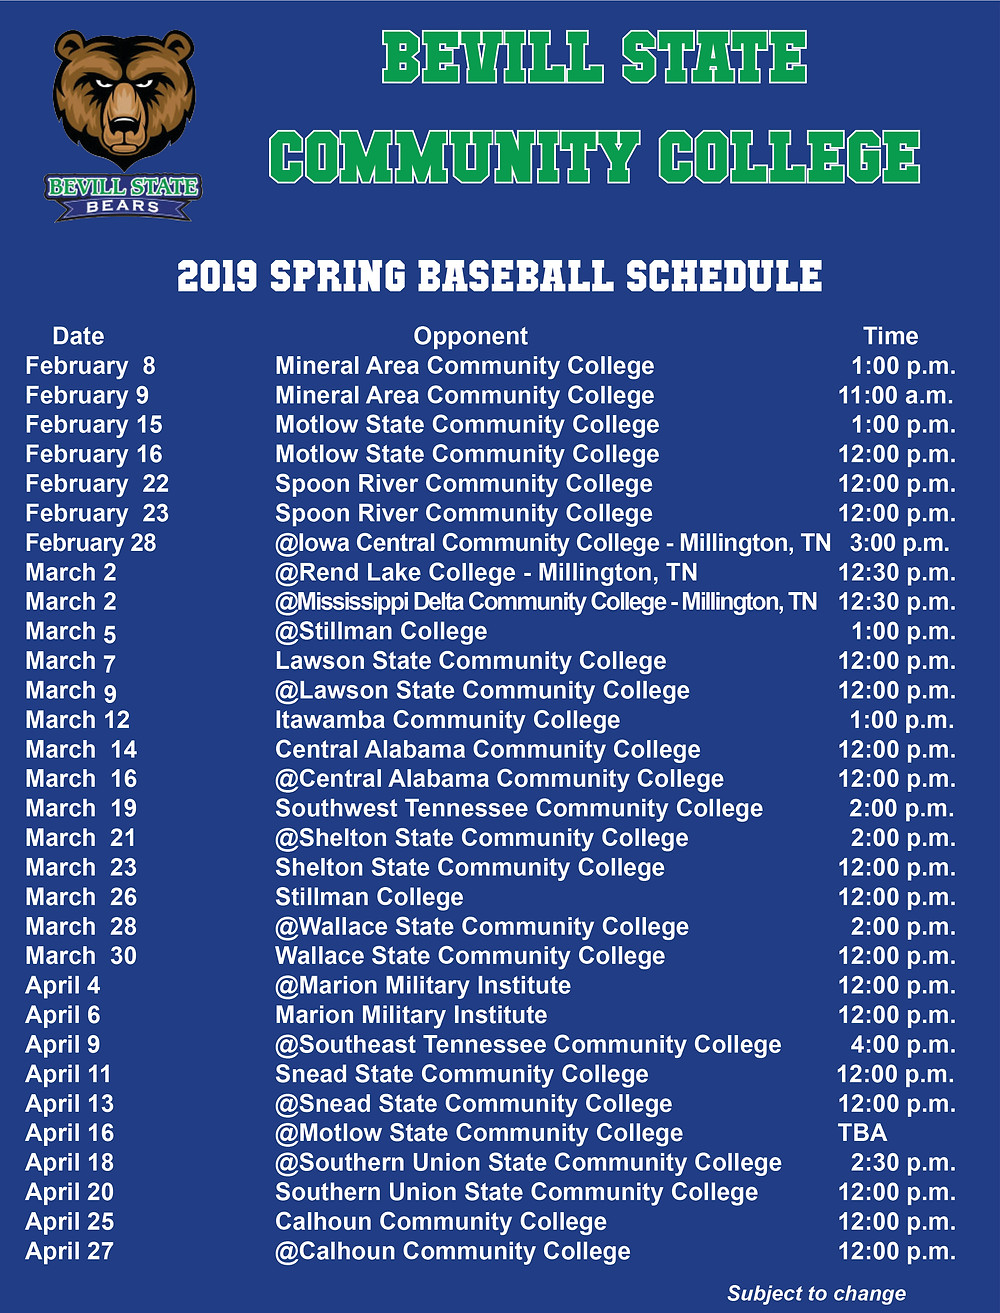 Bevill State 2019 Spring Baseball Schedule